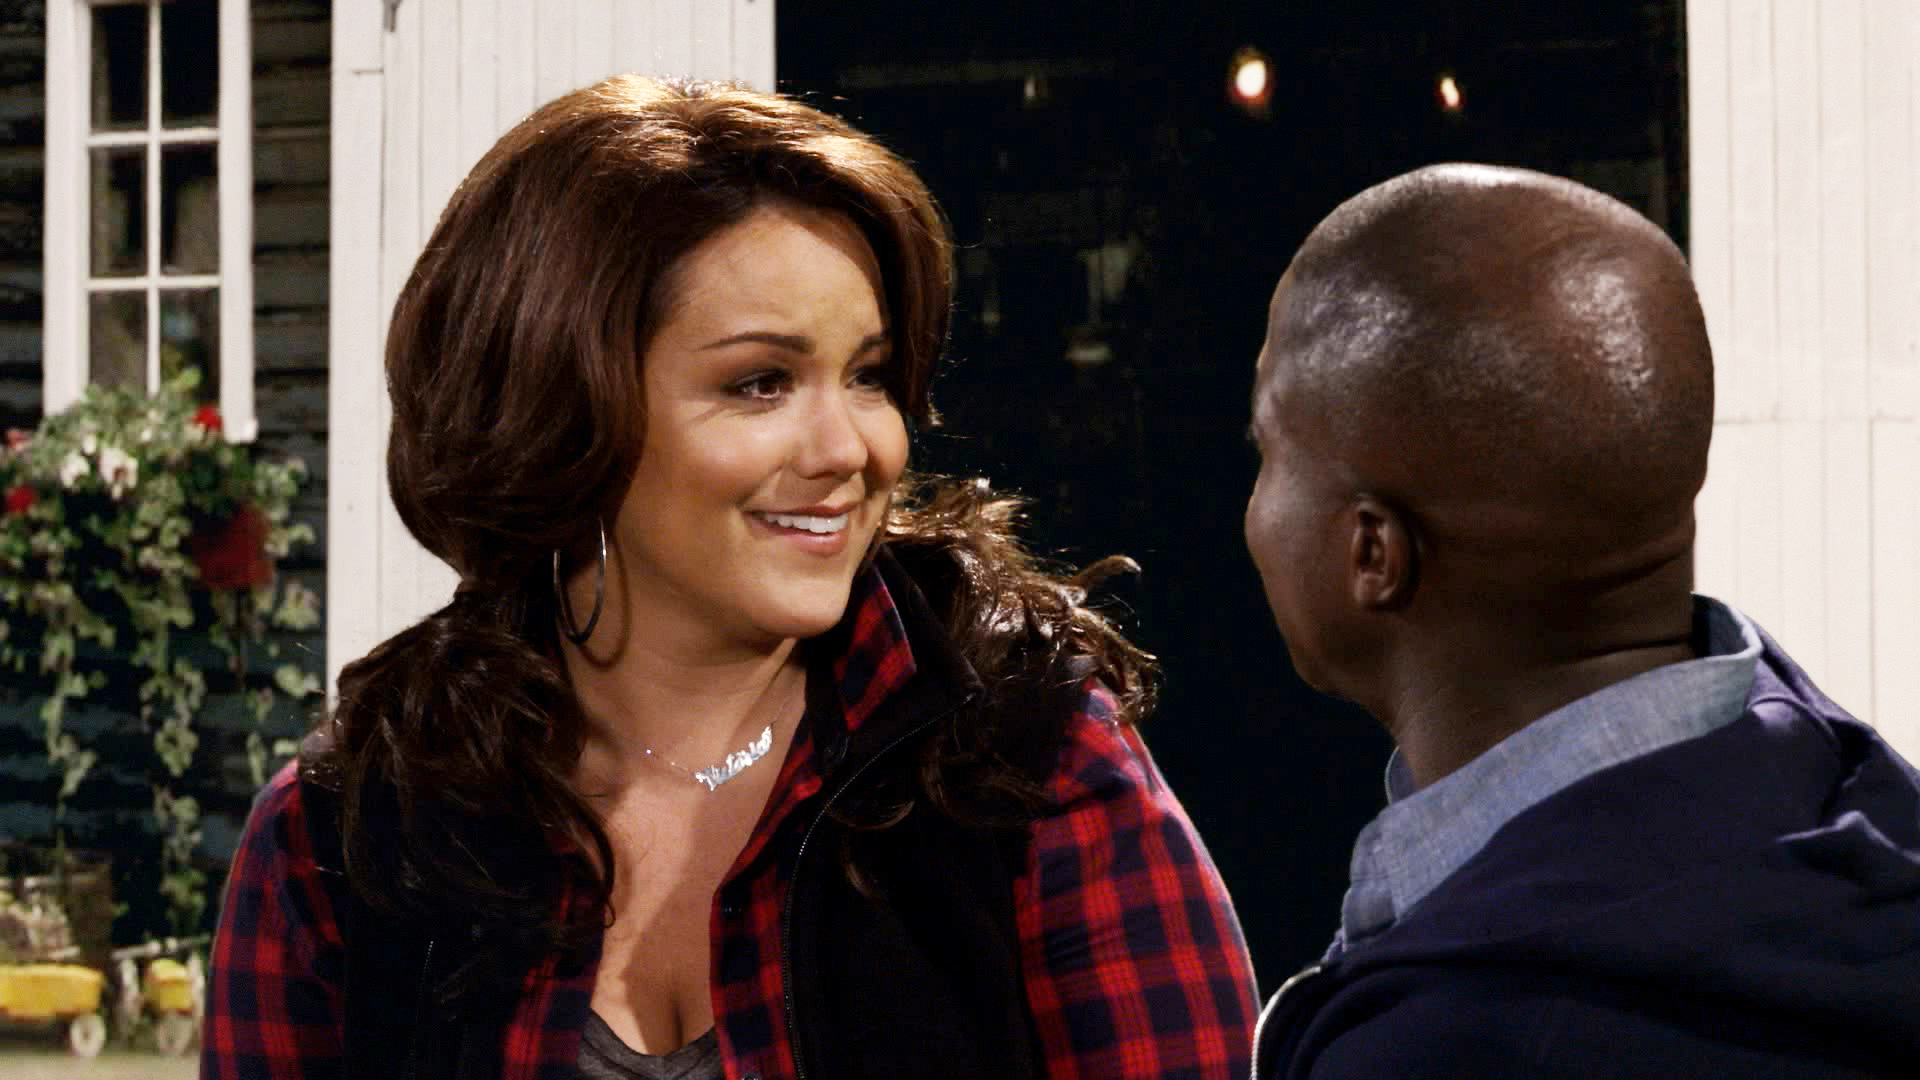 23. Victoria and Carl made it official - Mike & Molly